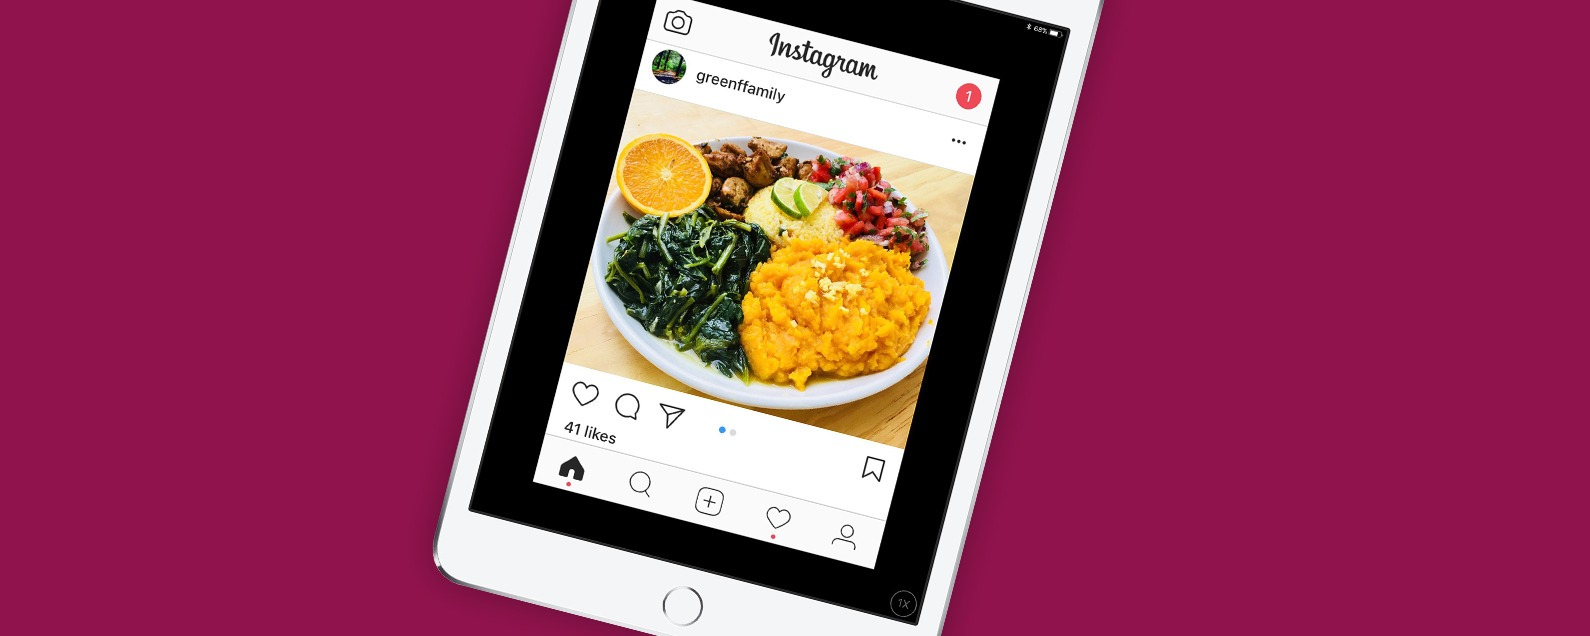 como baixar video do instagram para iphone